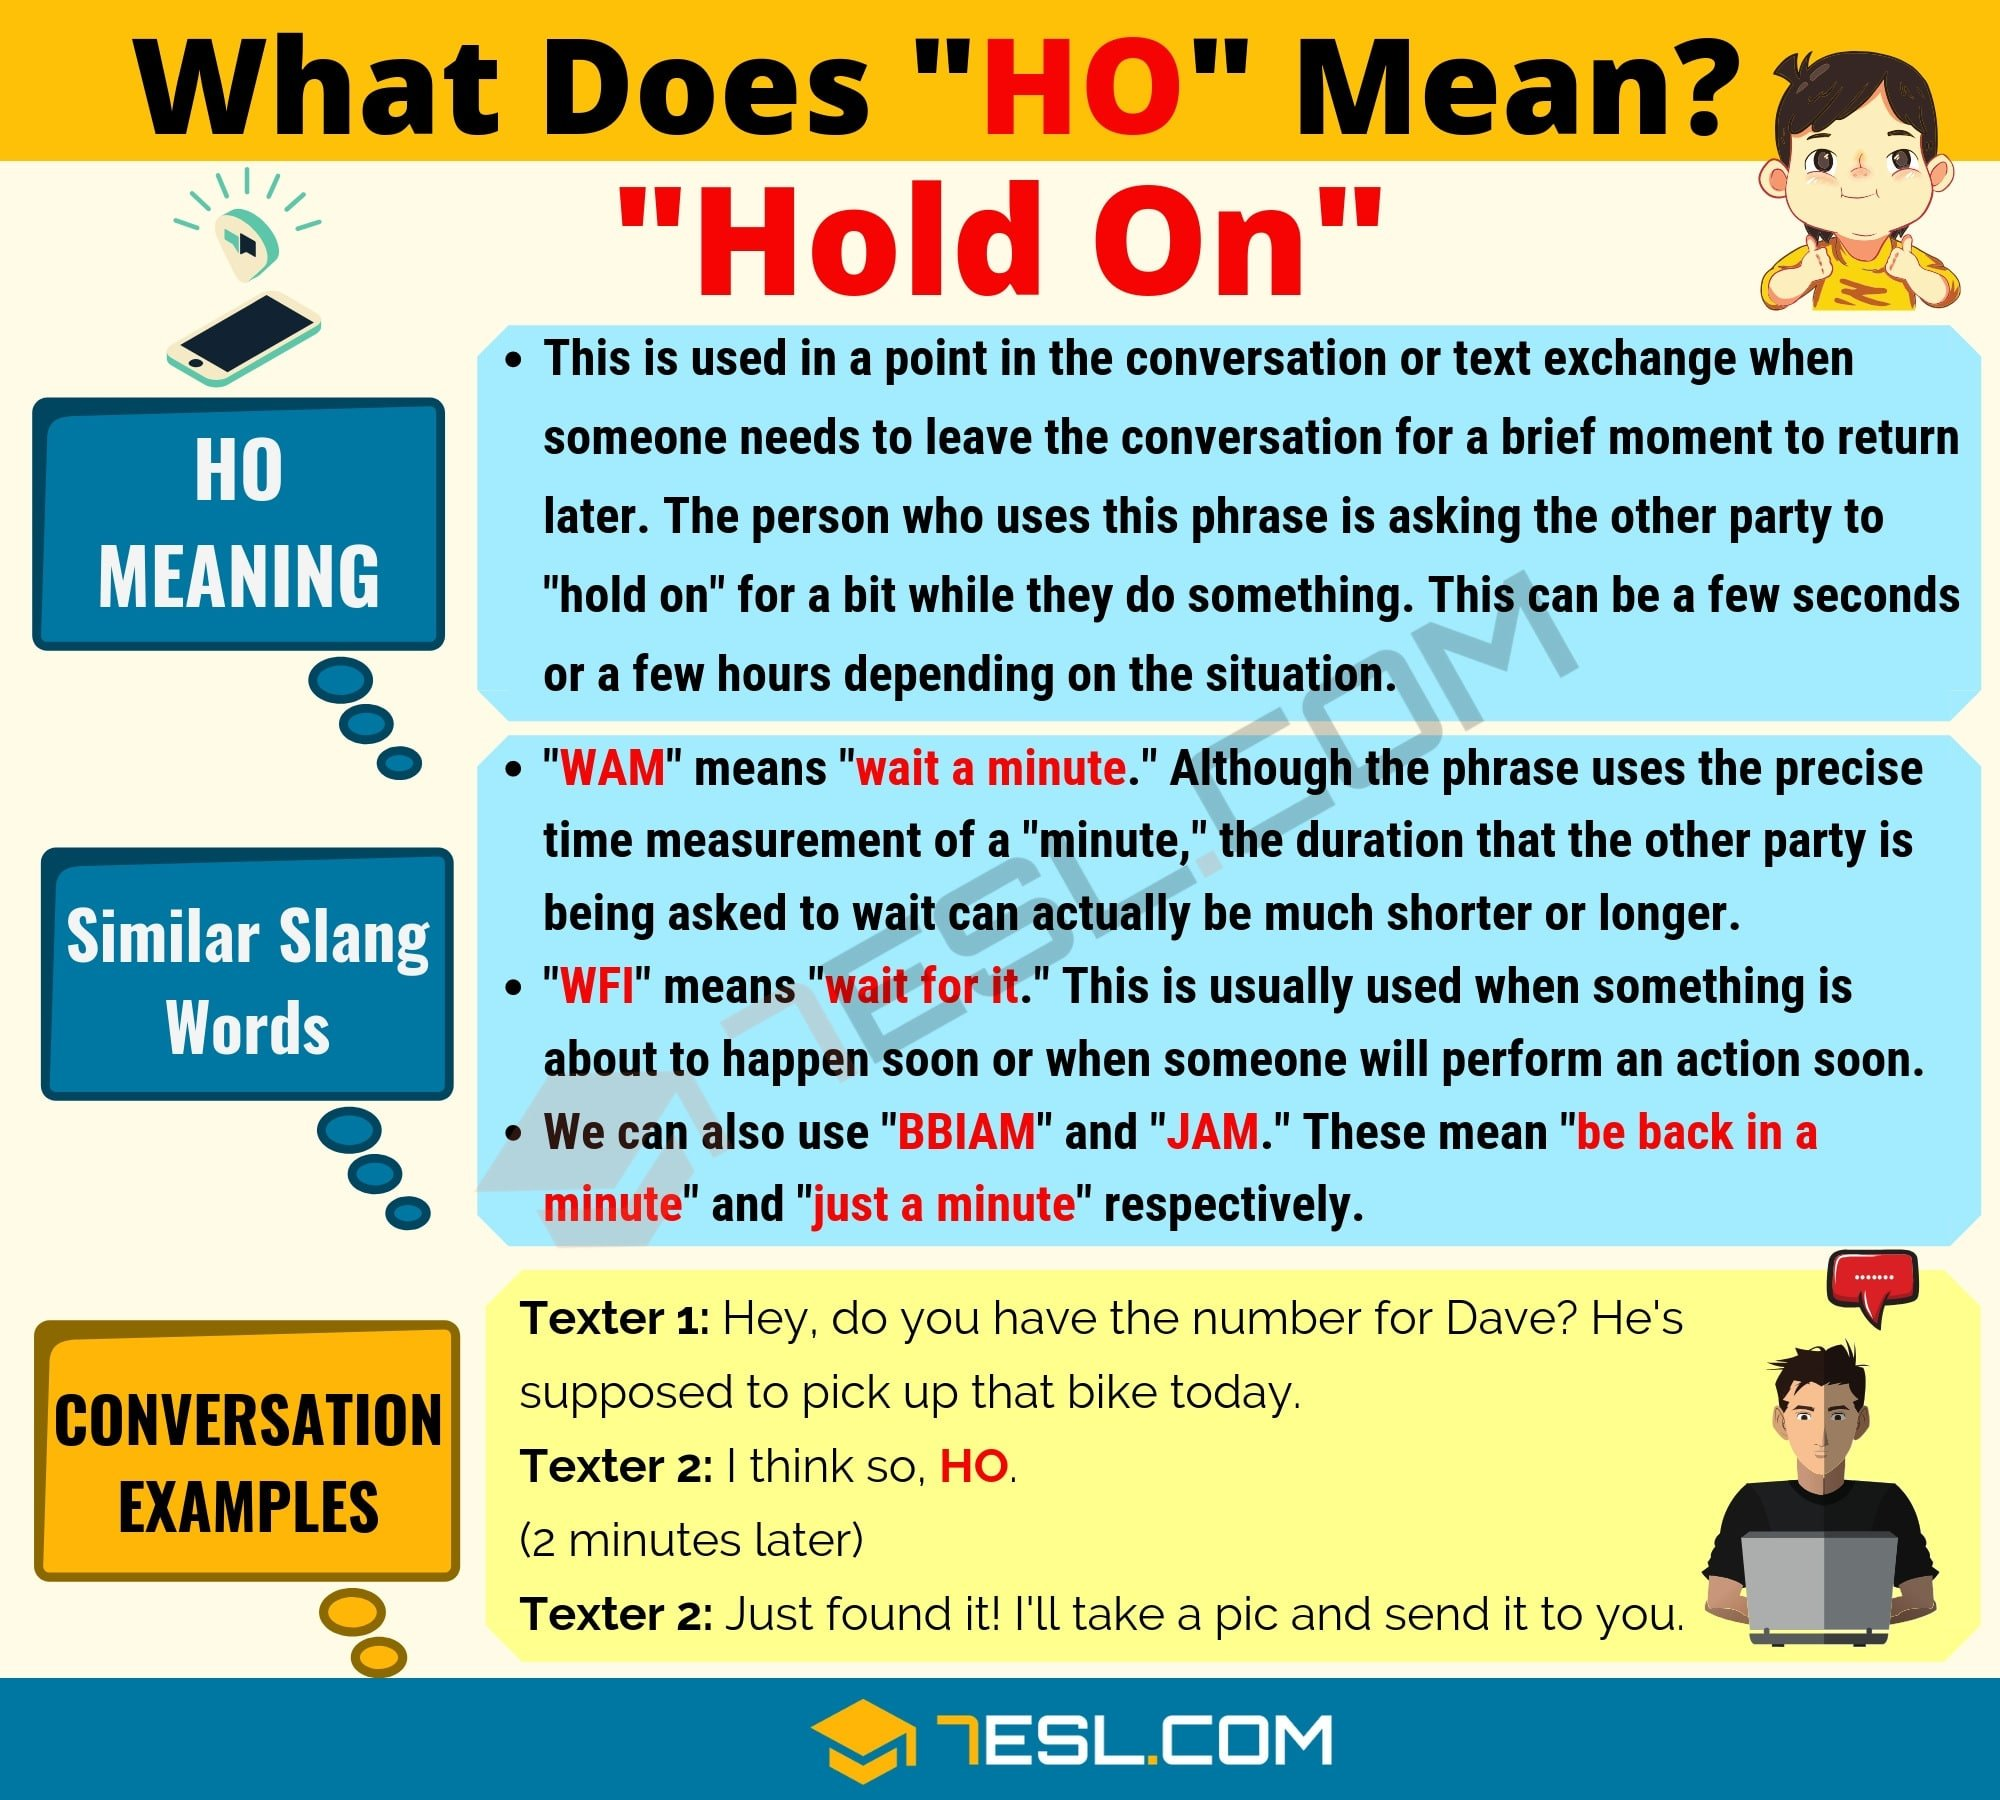 HO Meaning